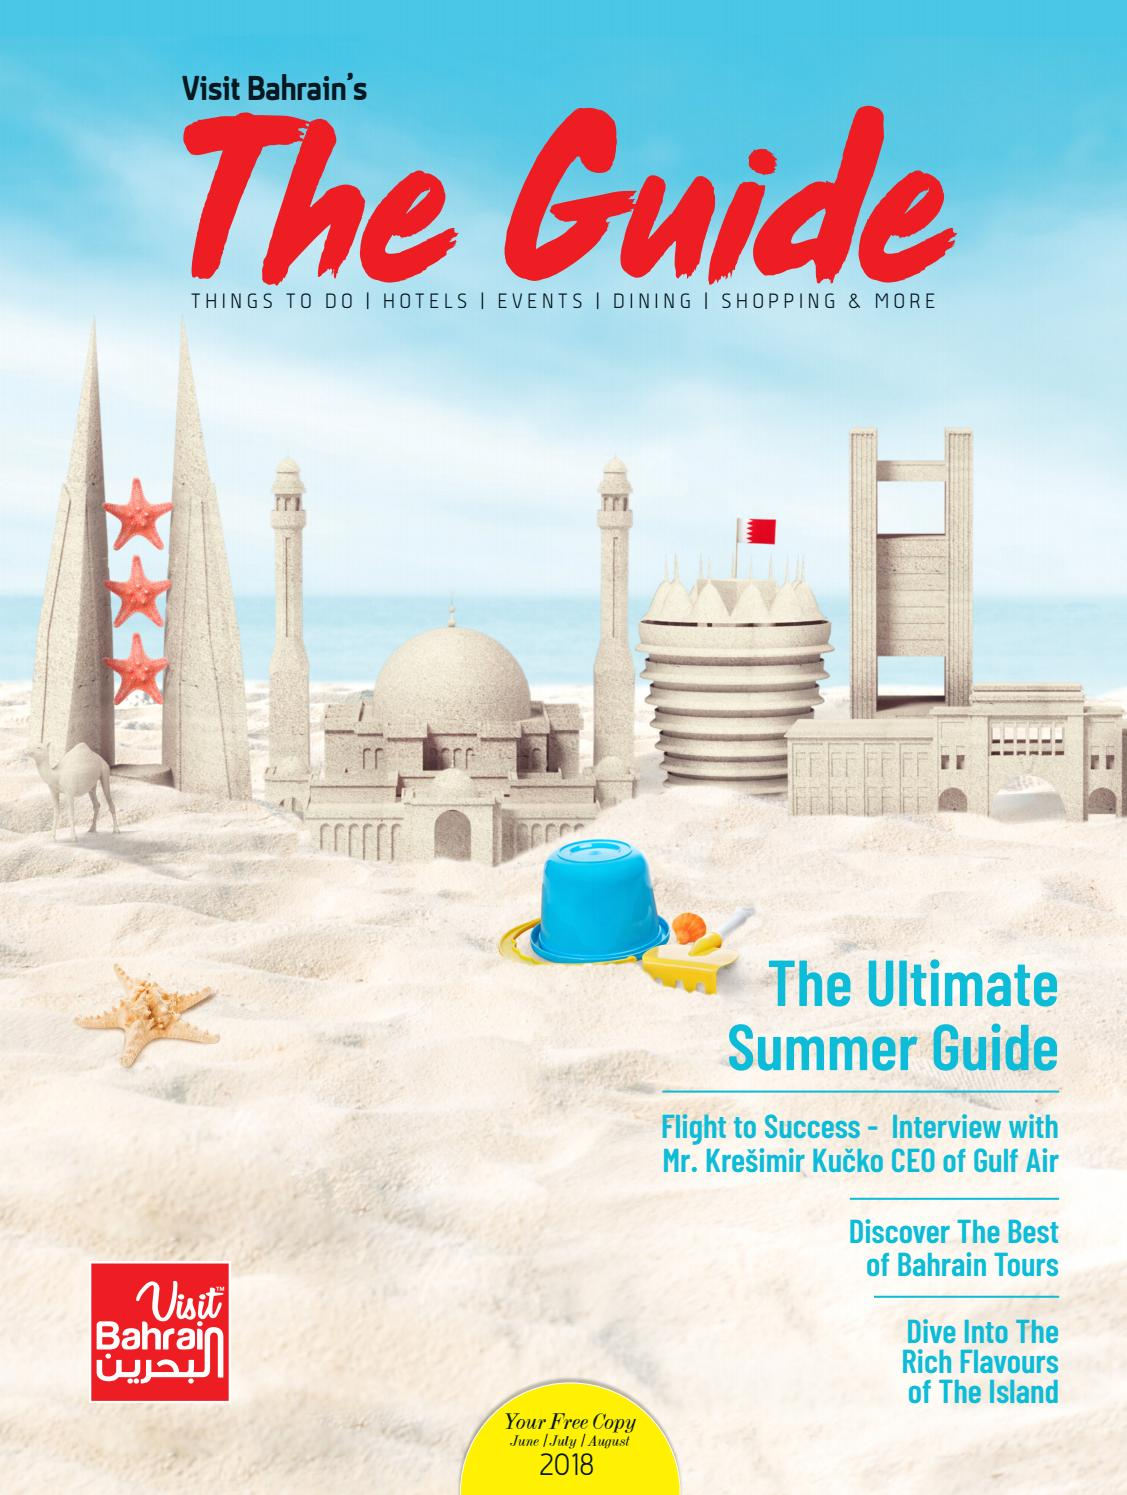 The Guide by Visit Bahrain | June-August '18 by Visit